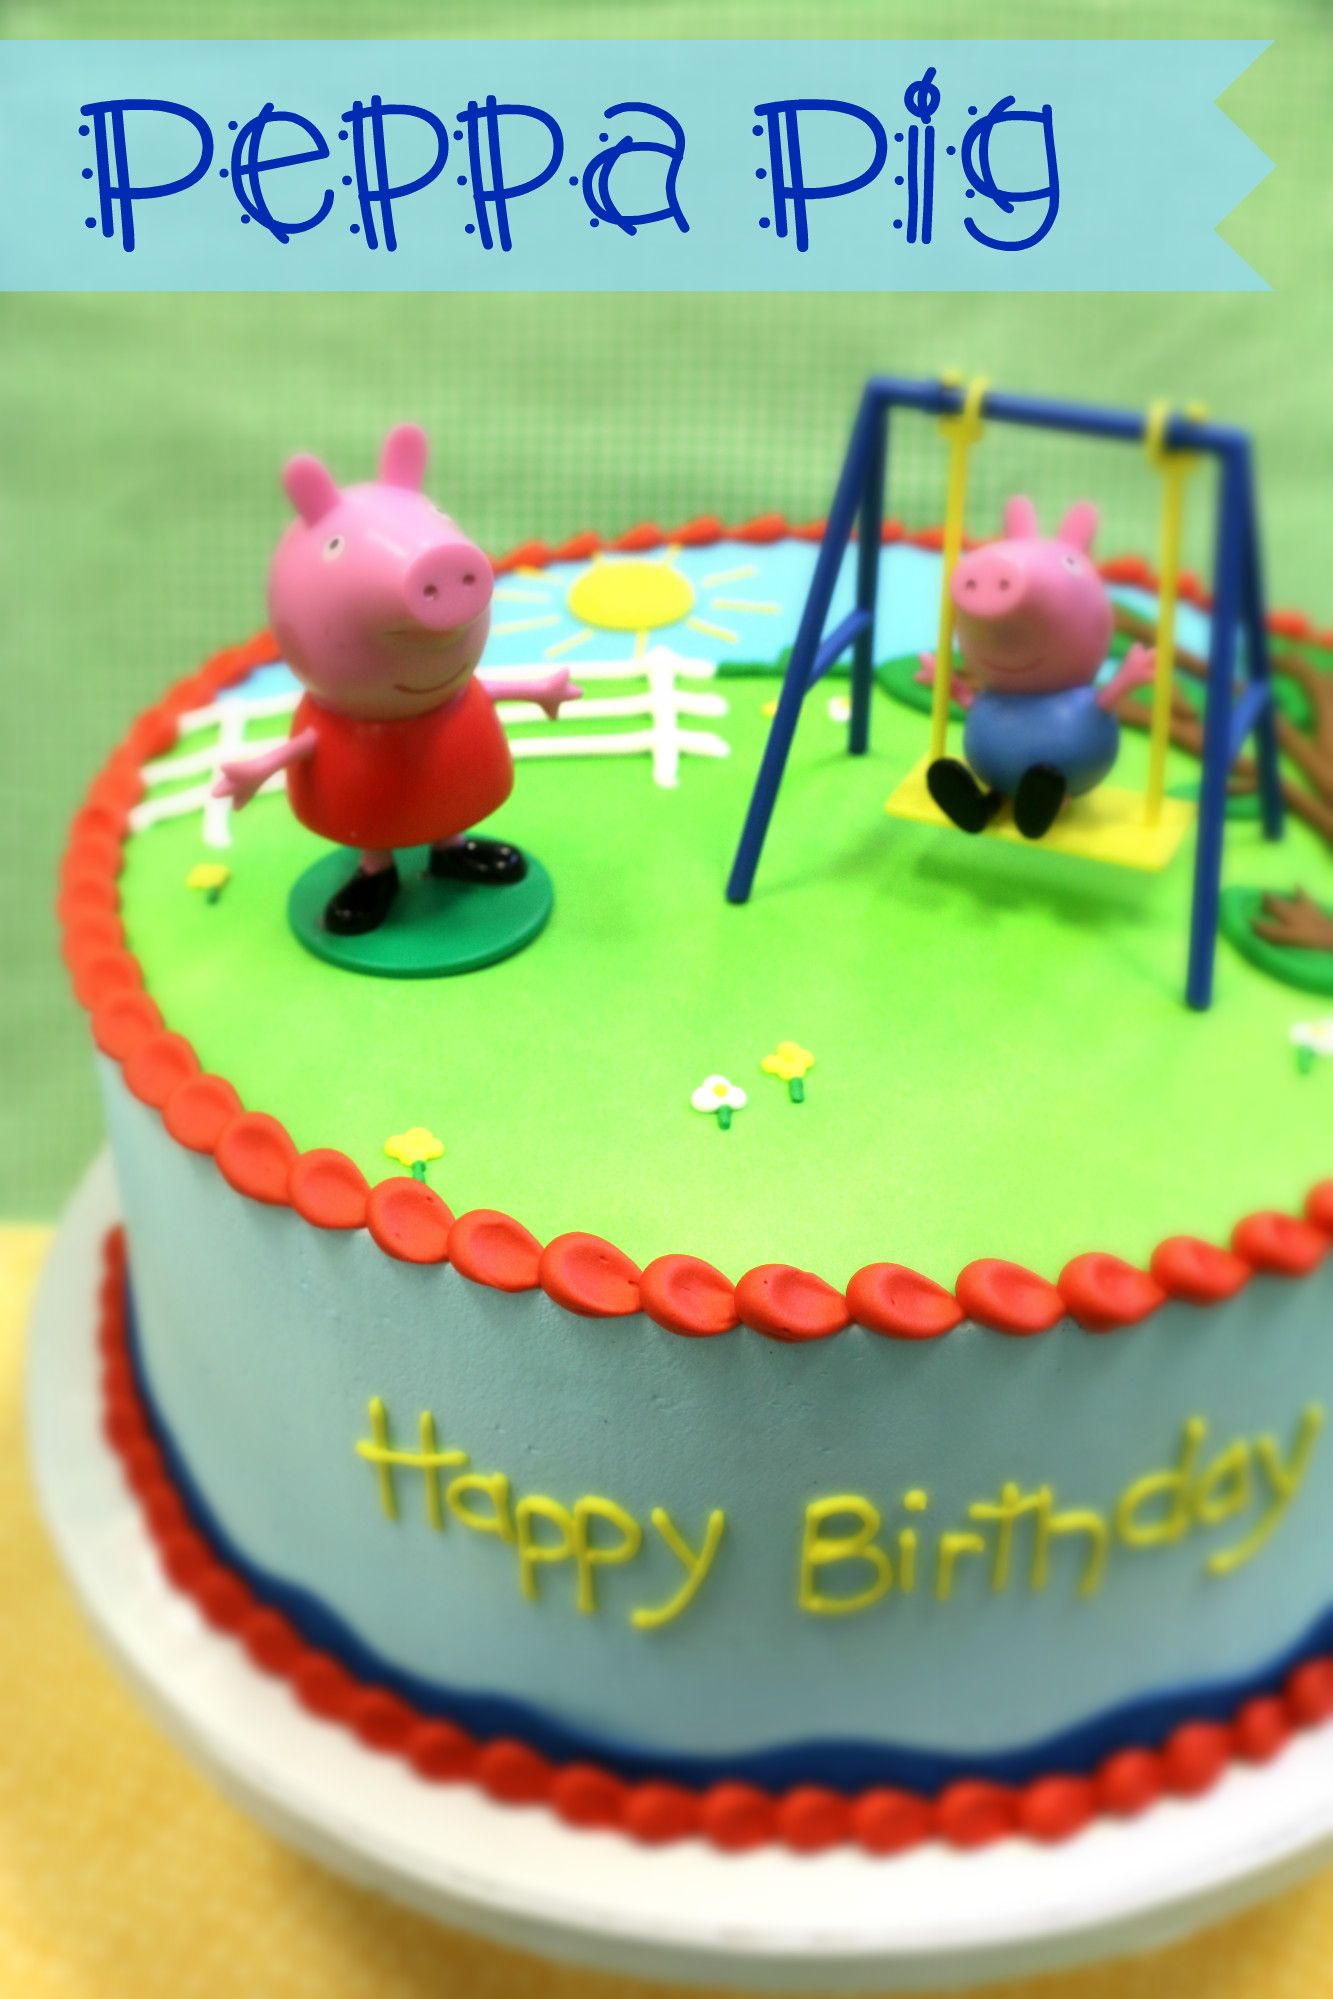 Outstanding Peppa Pig Cake Topper With Images Peppa Pig Cake Peppa Pig Funny Birthday Cards Online Overcheapnameinfo